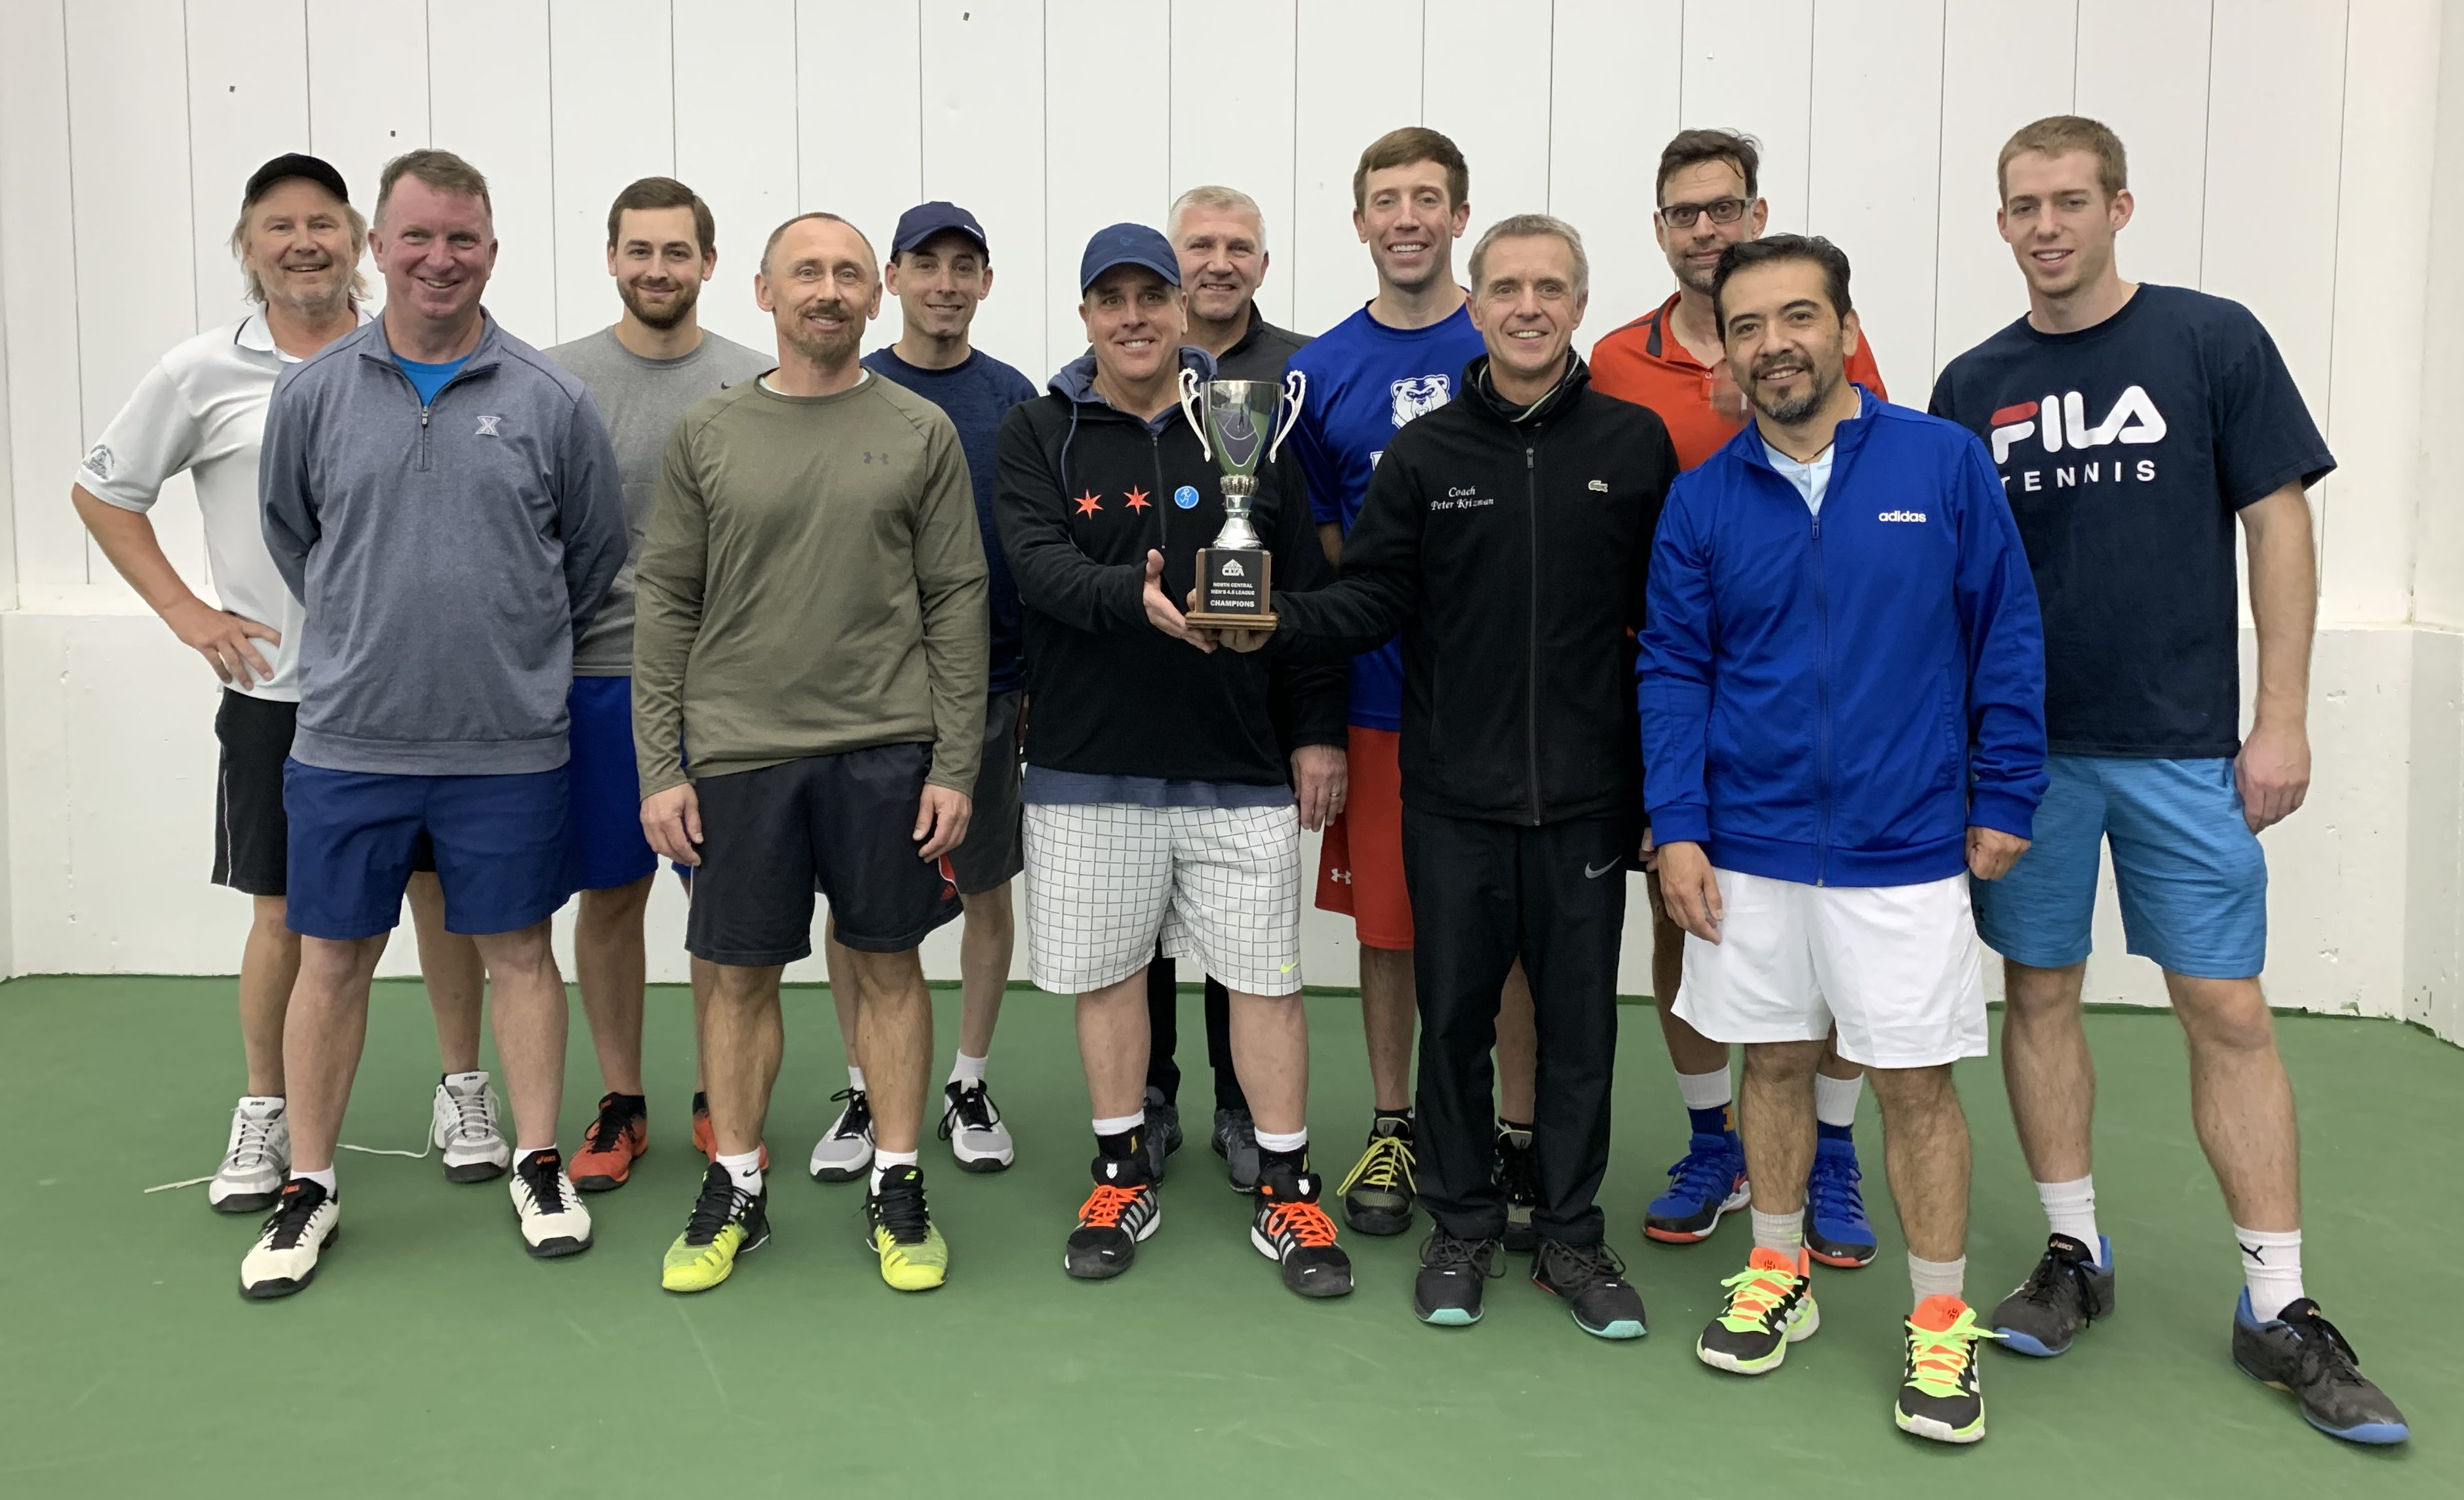 Racquet Club Lake Bluff winners of the Mens 4.5 Doubles